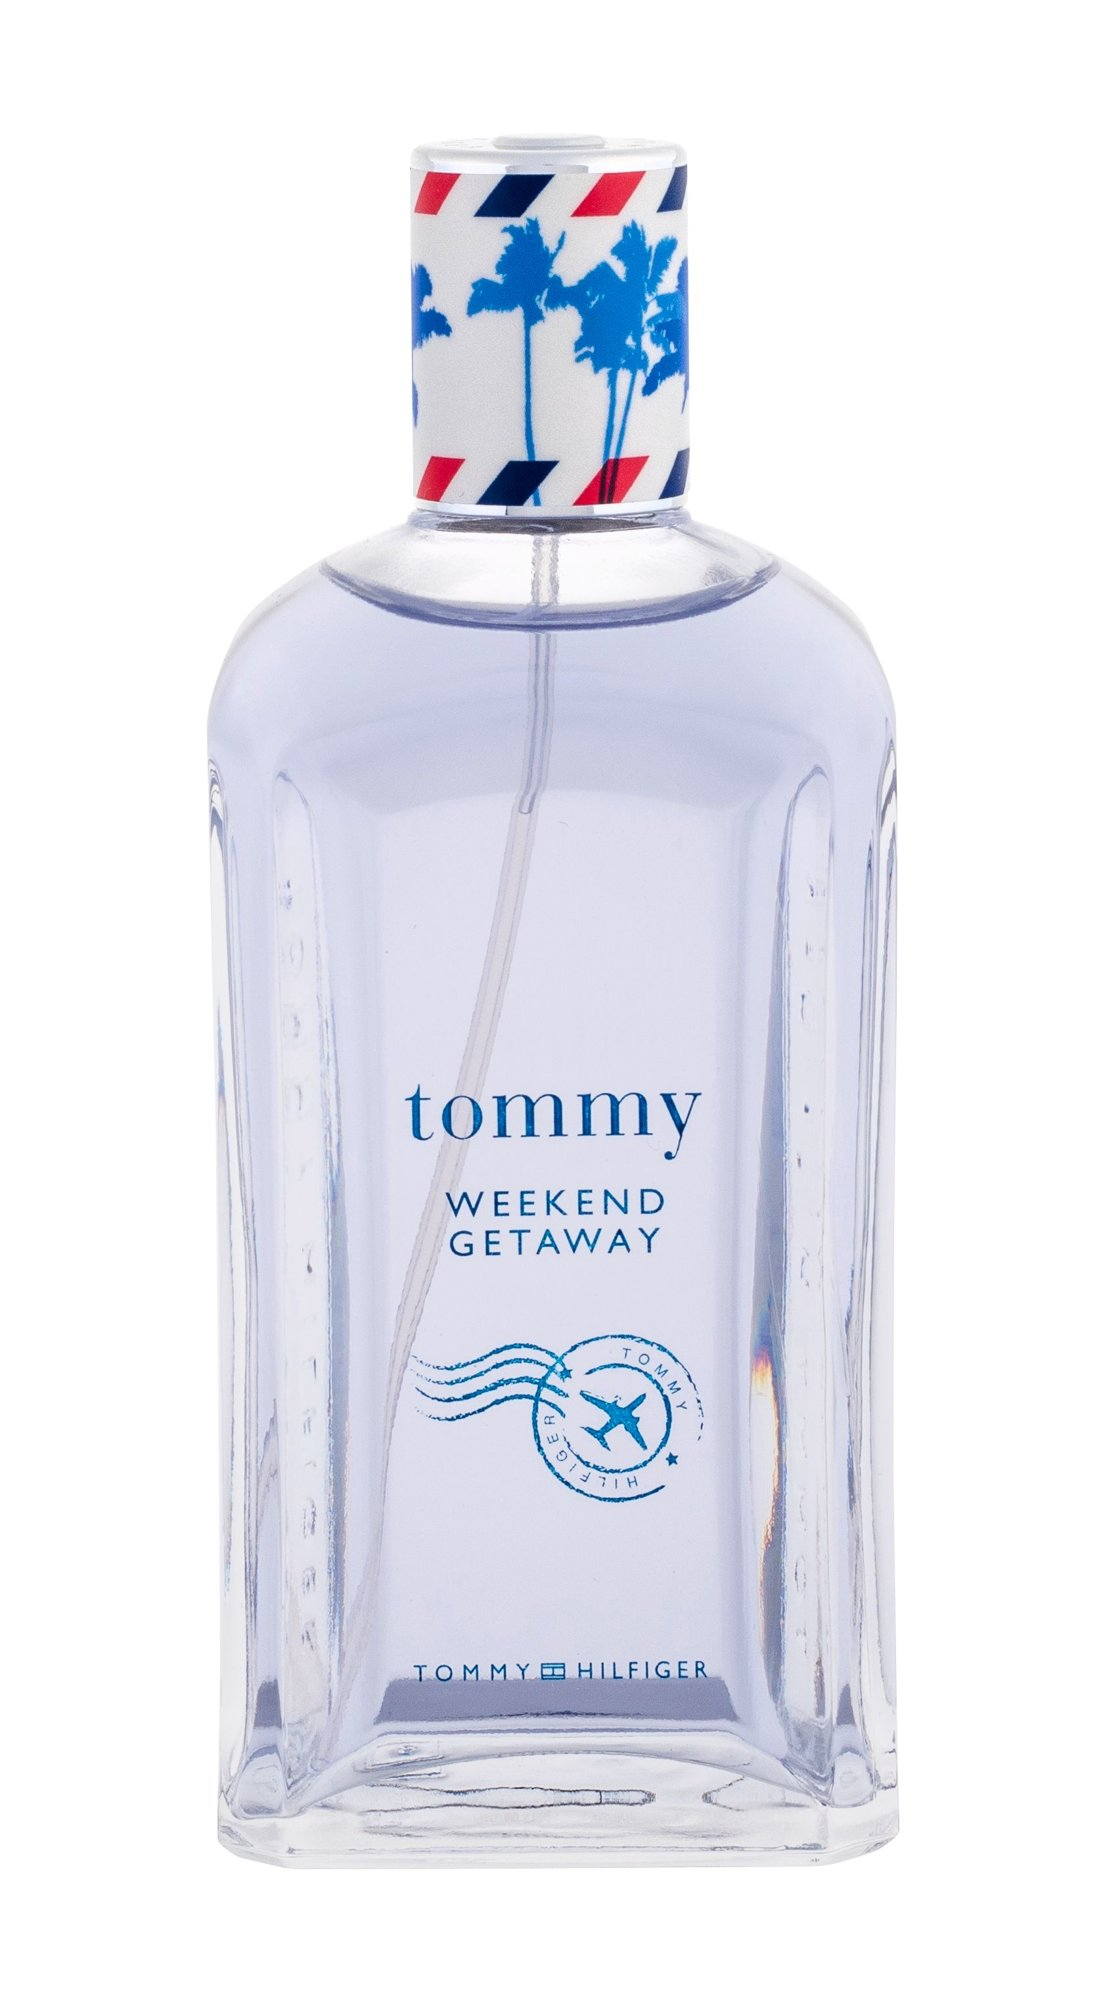 Tommy Hilfiger Tommy Weekend Getaway Eau de Toilette 100ml